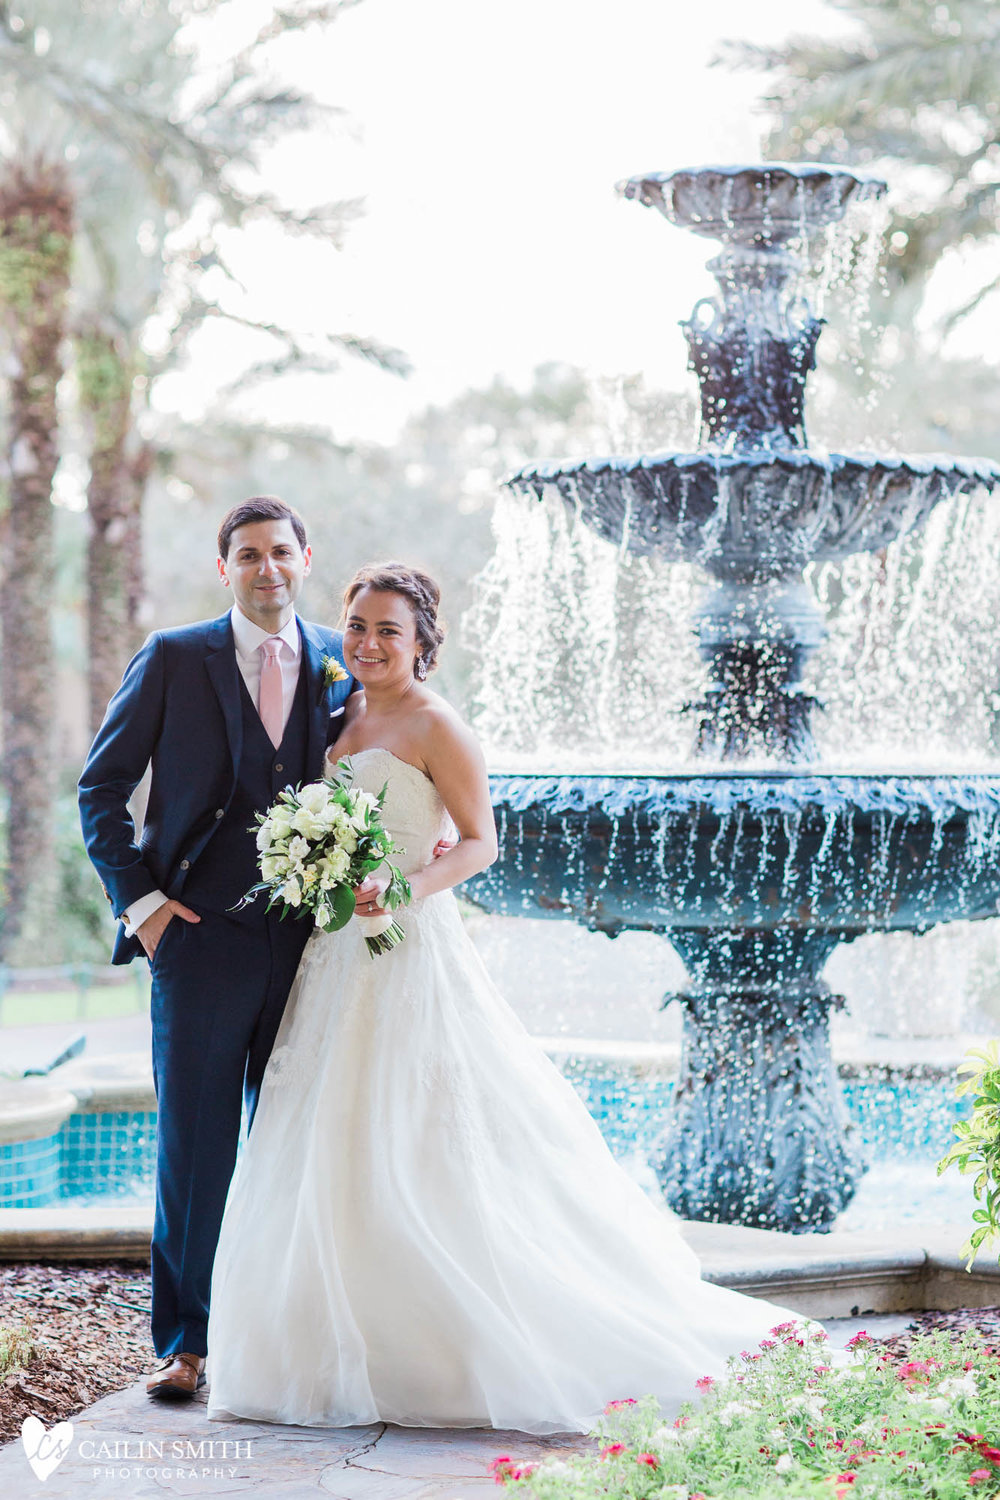 Hallie_Ari_Ritz_Carlton_Amelia_Island_Wedding_Photography_0053.jpg